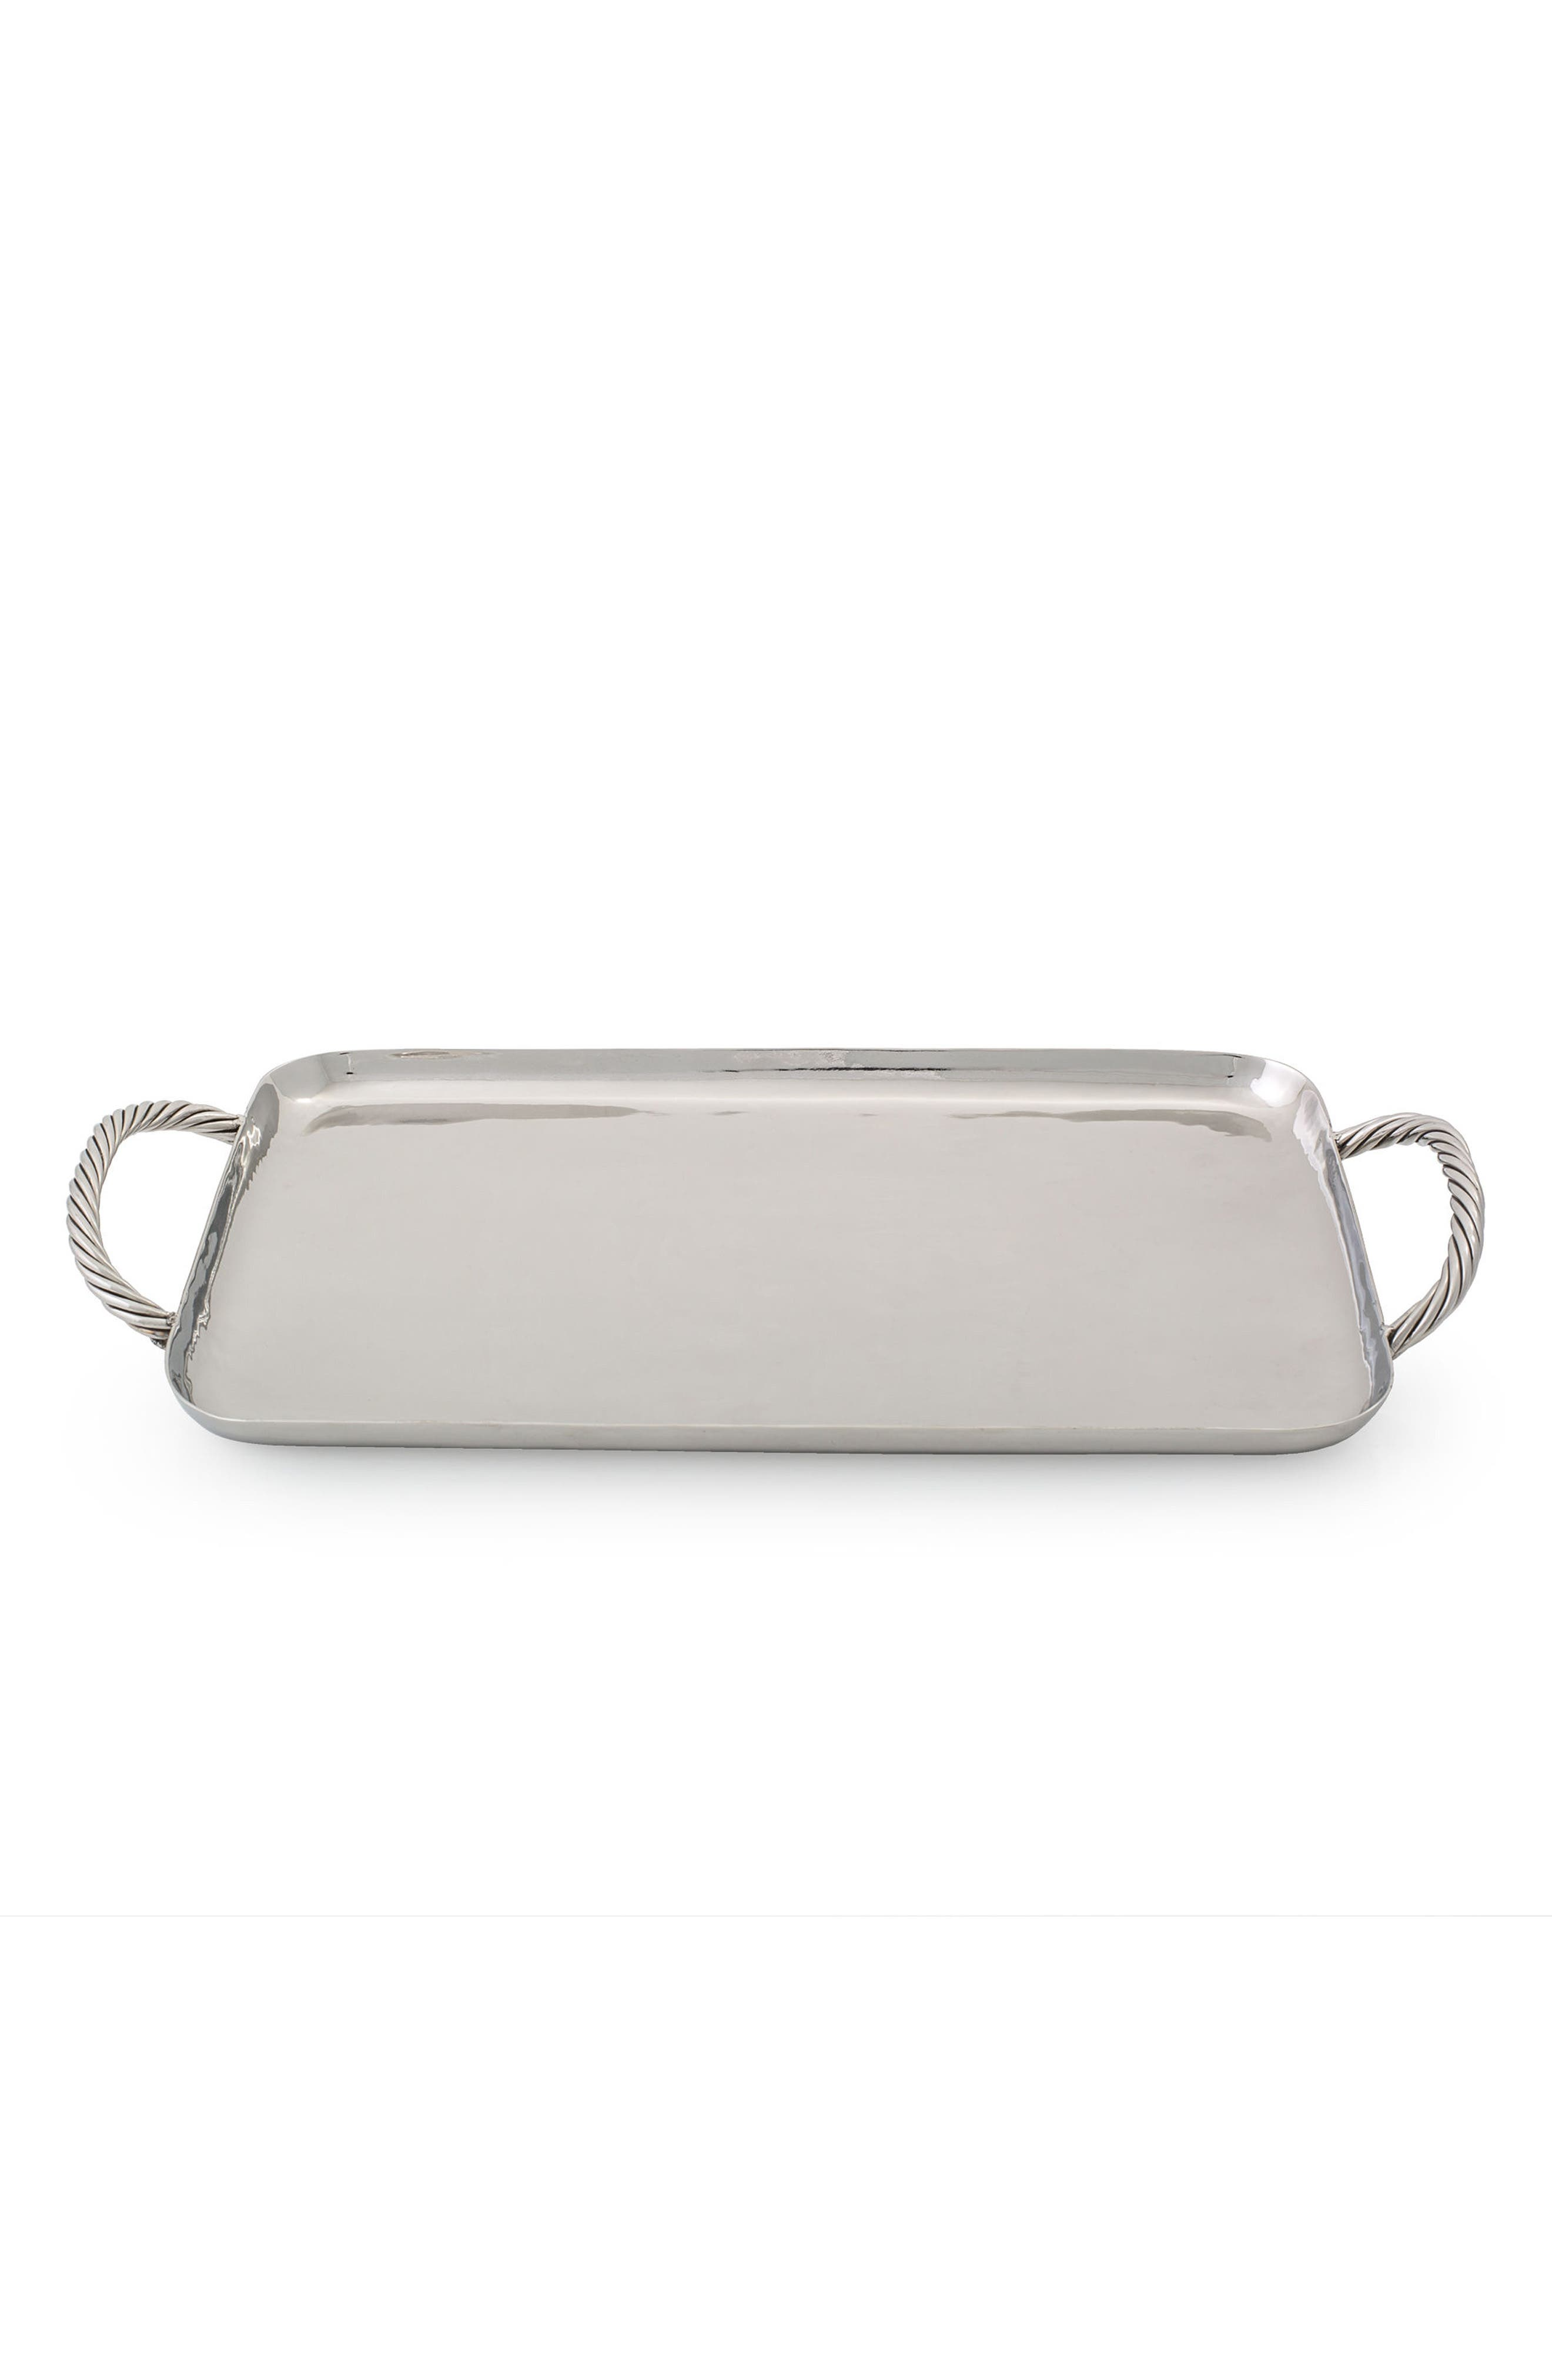 Medium Twist Stainless Steel Tray,                         Main,                         color, 040